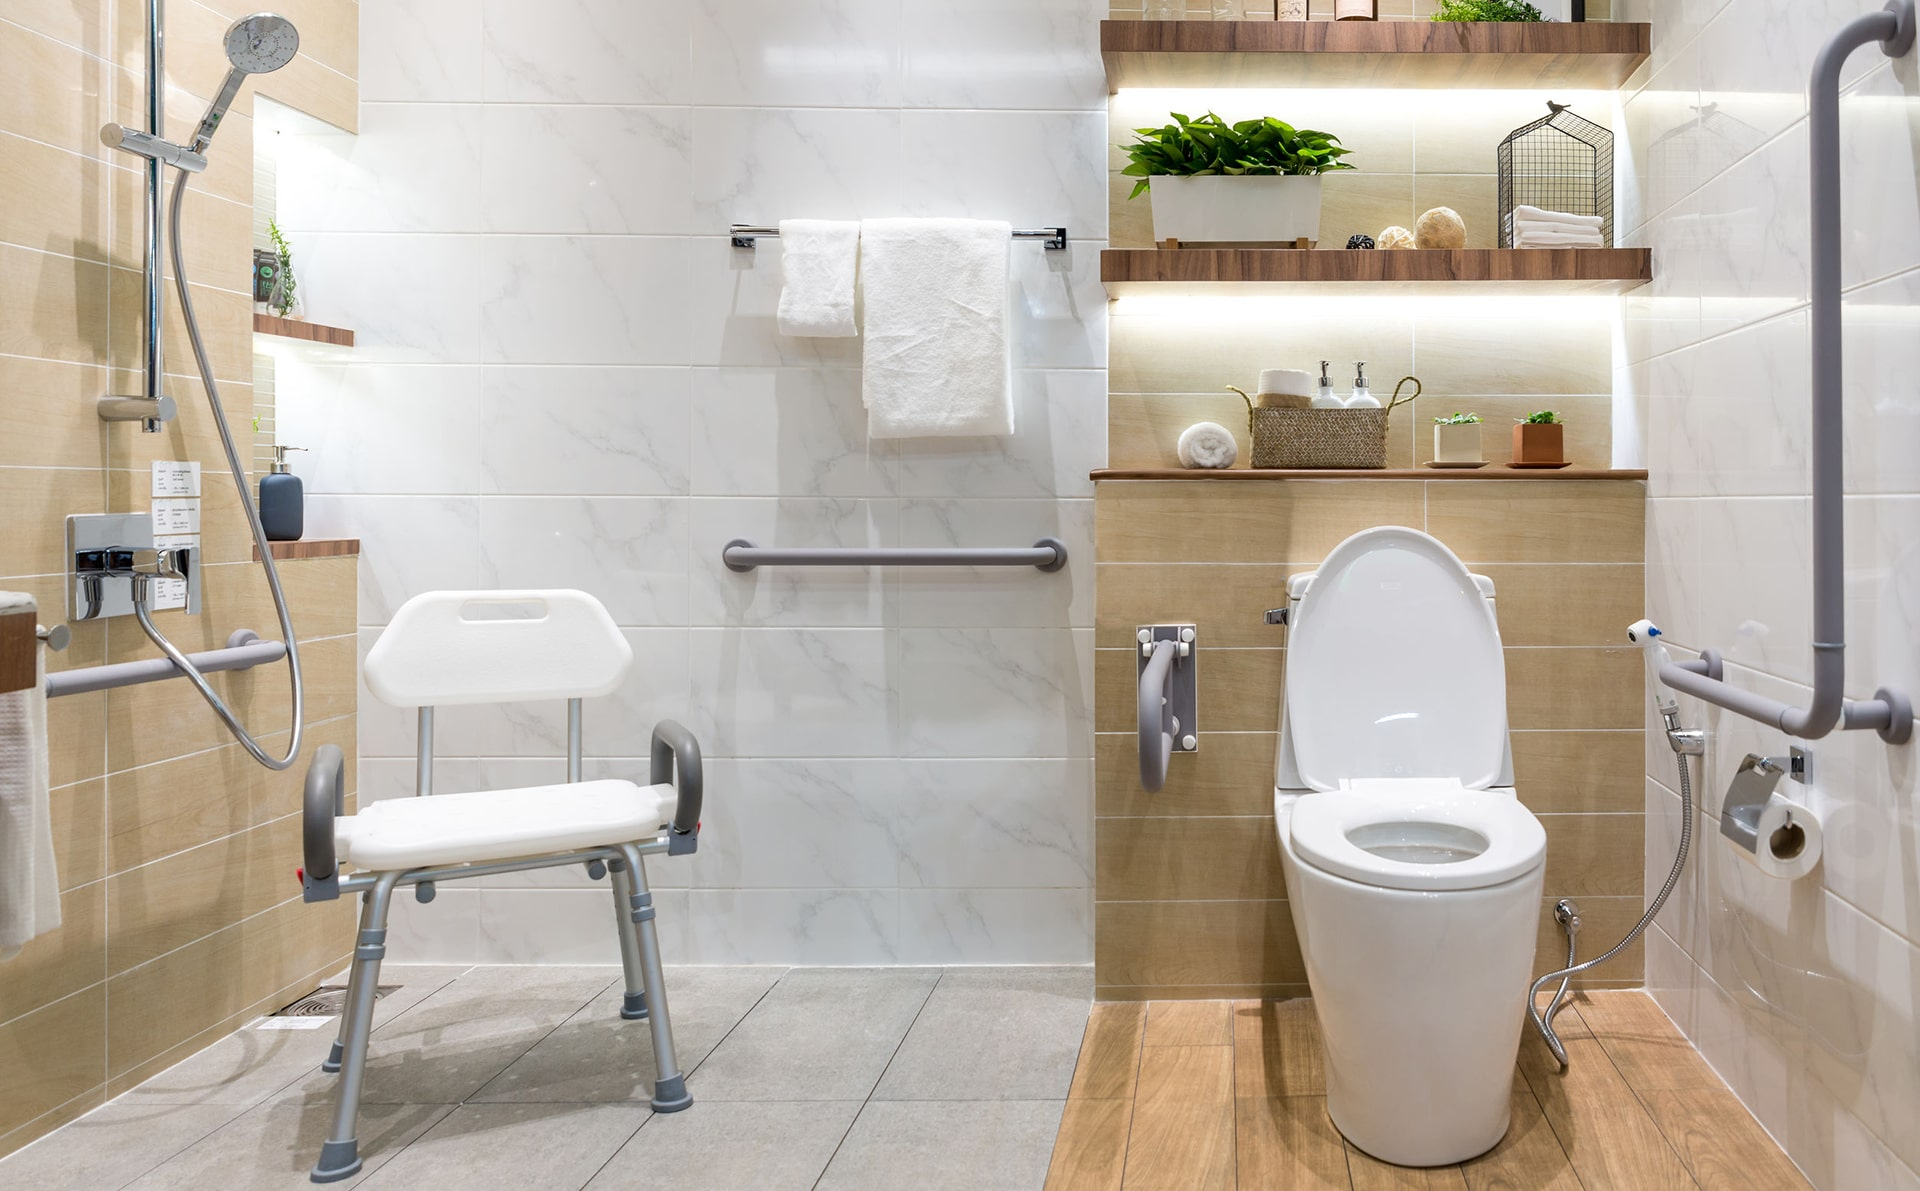 image of a barrier free bathroom